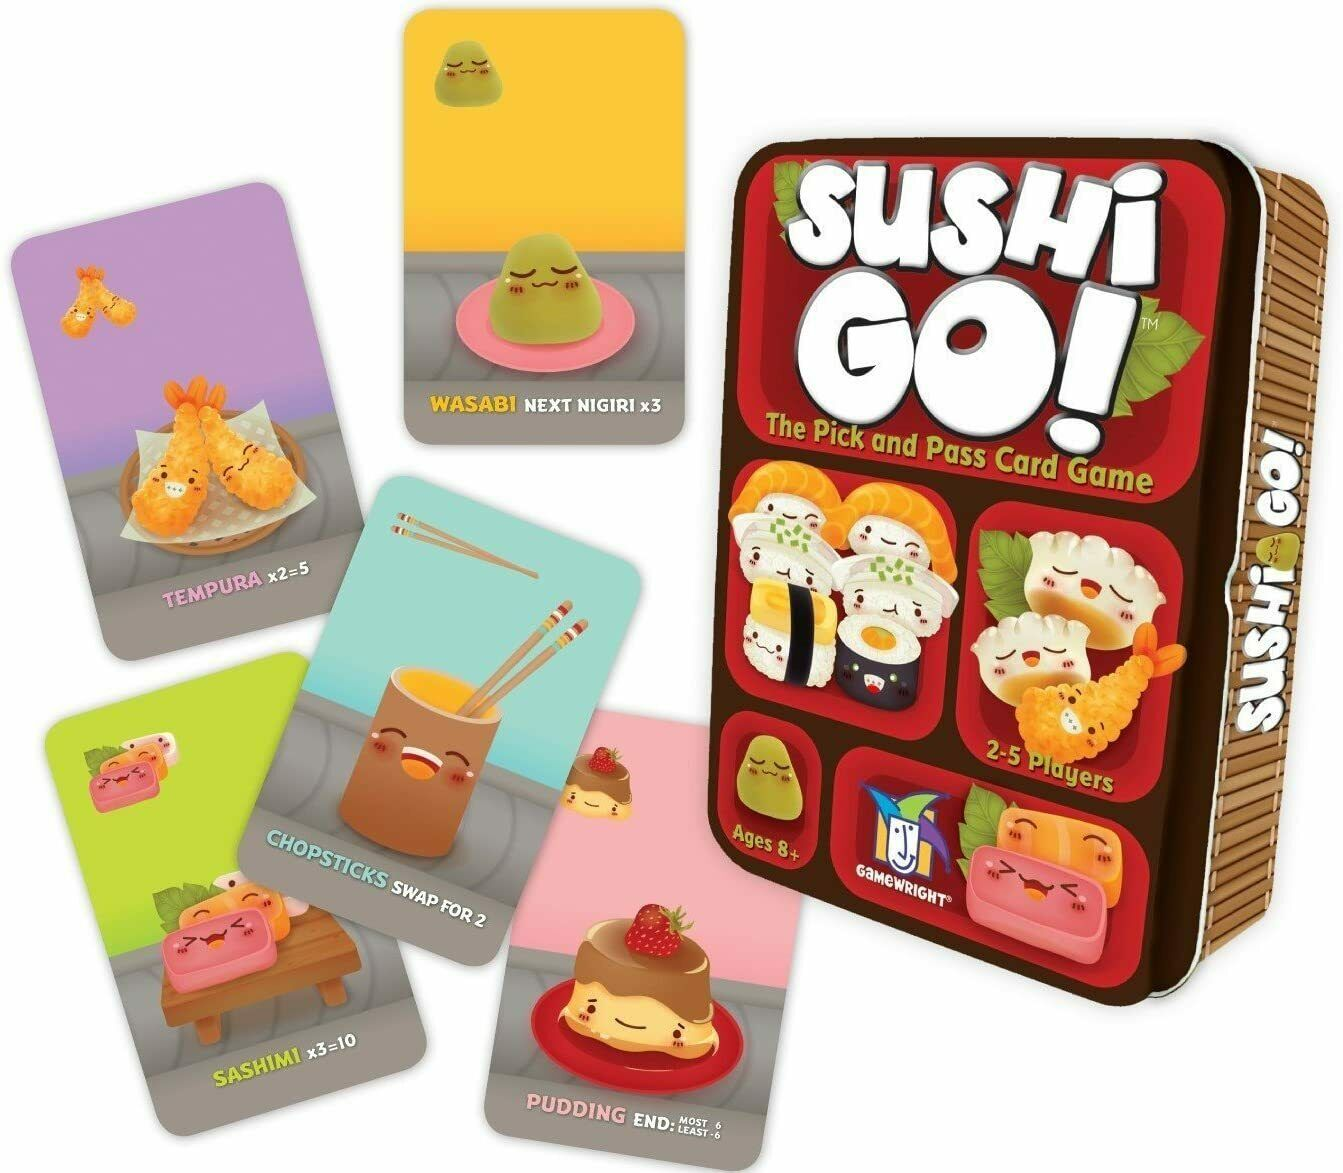 Sushi Go! The Pick and Pass Card Game Brand New Sealed